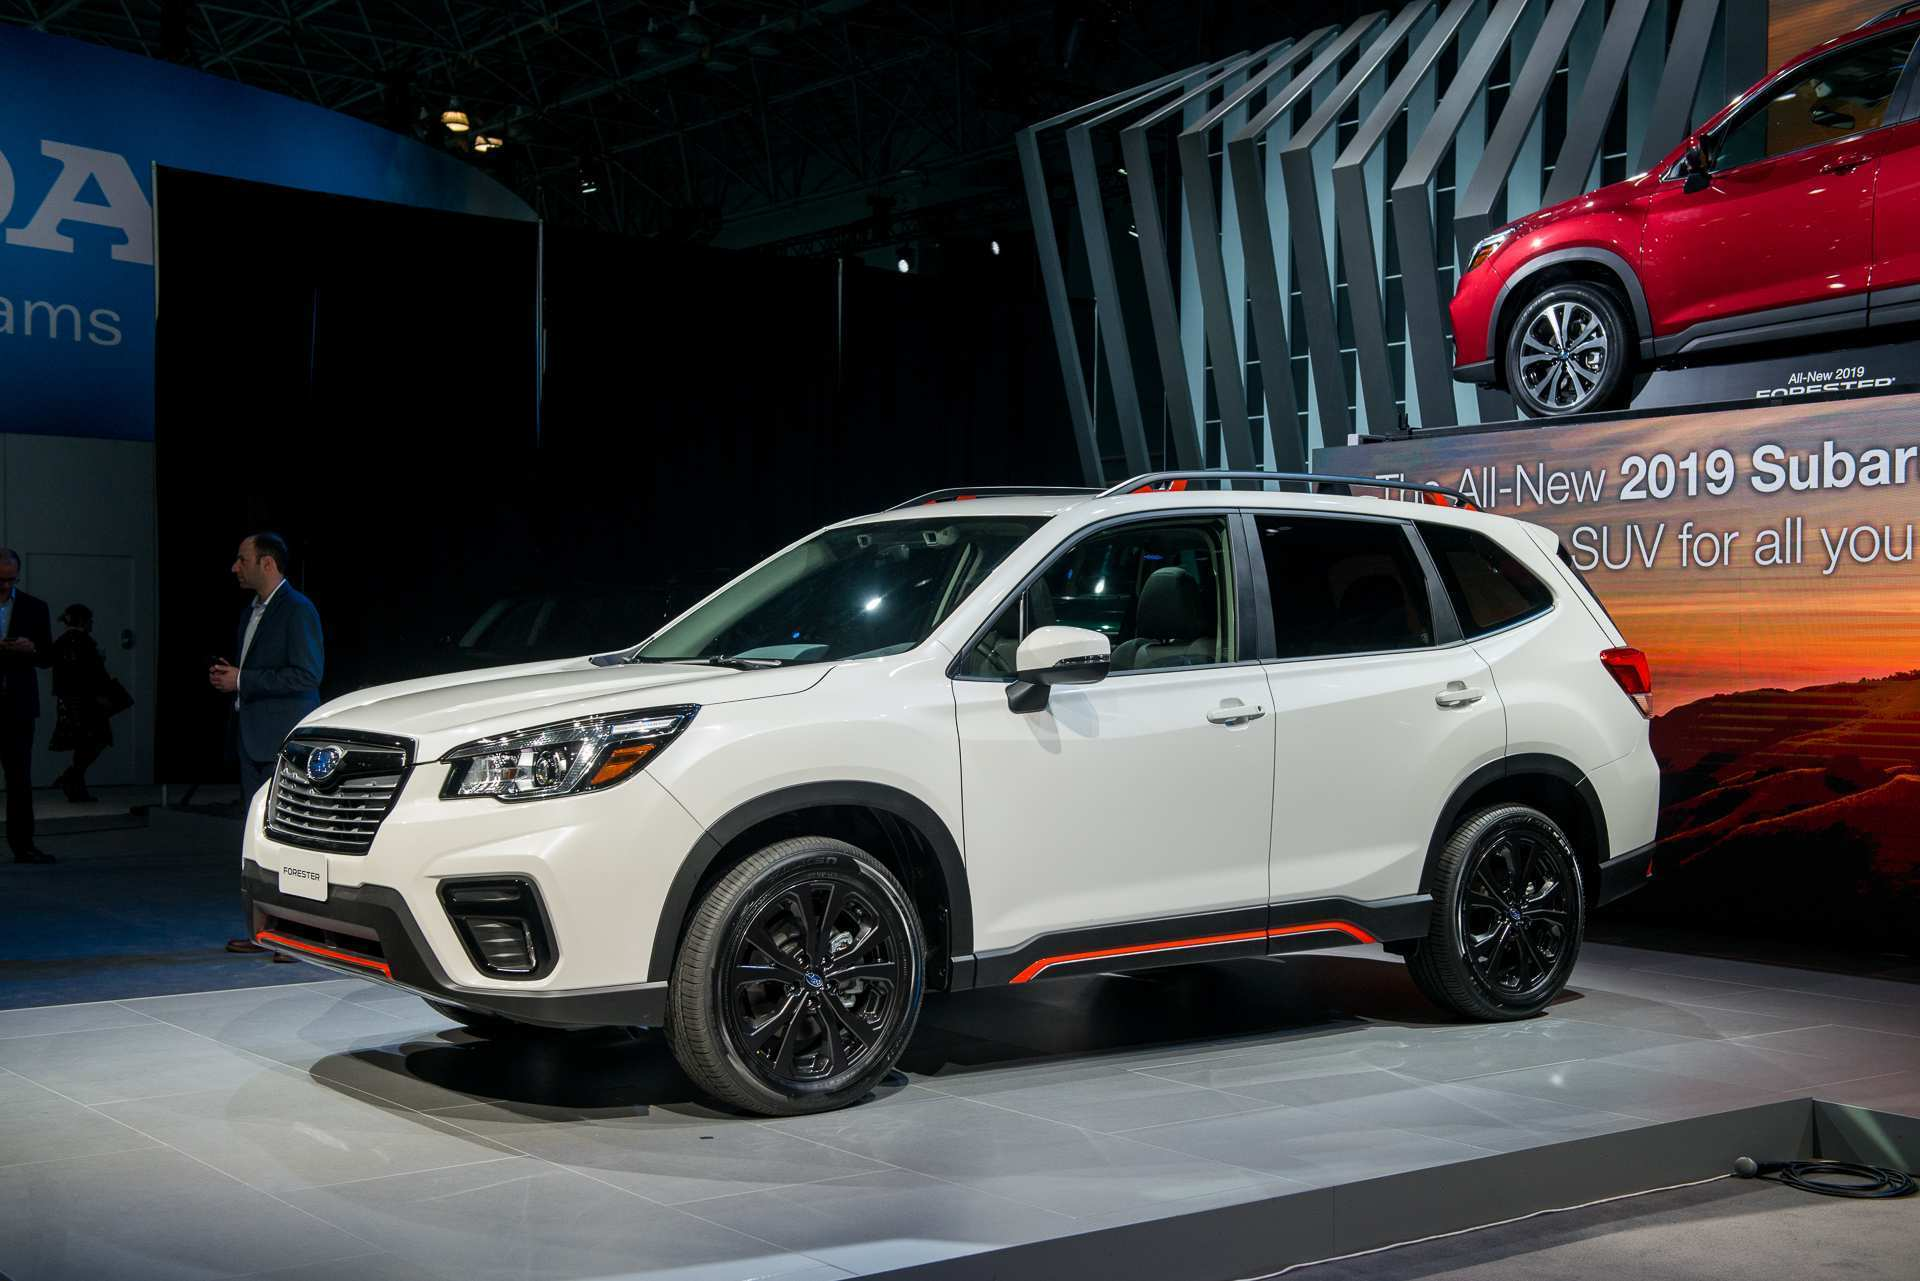 93 All New 2019 Subaru Suv Redesign And Concept